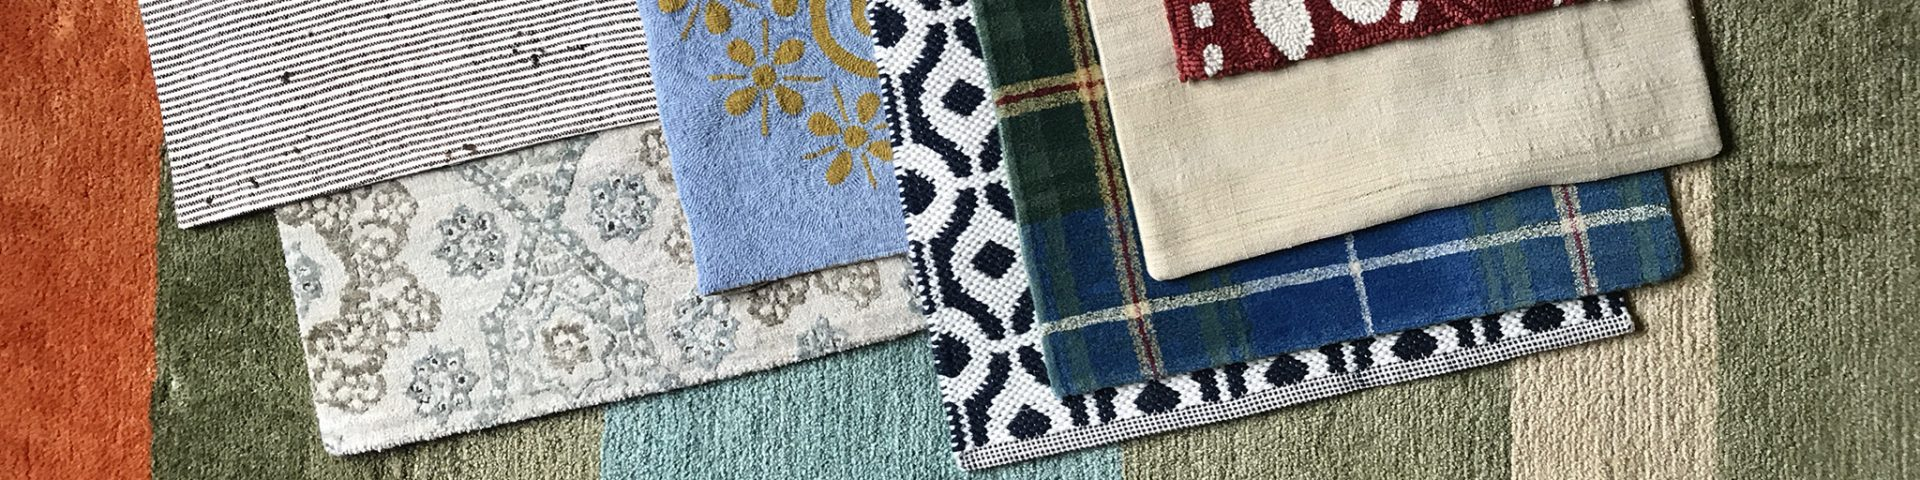 Hand and Handle are both terms that can be used to describe the feel of a carpet. In 'Touch Me: The Hand(le) of Carpets' The Ruggist explores the meaning of both.   Image by The Ruggist.